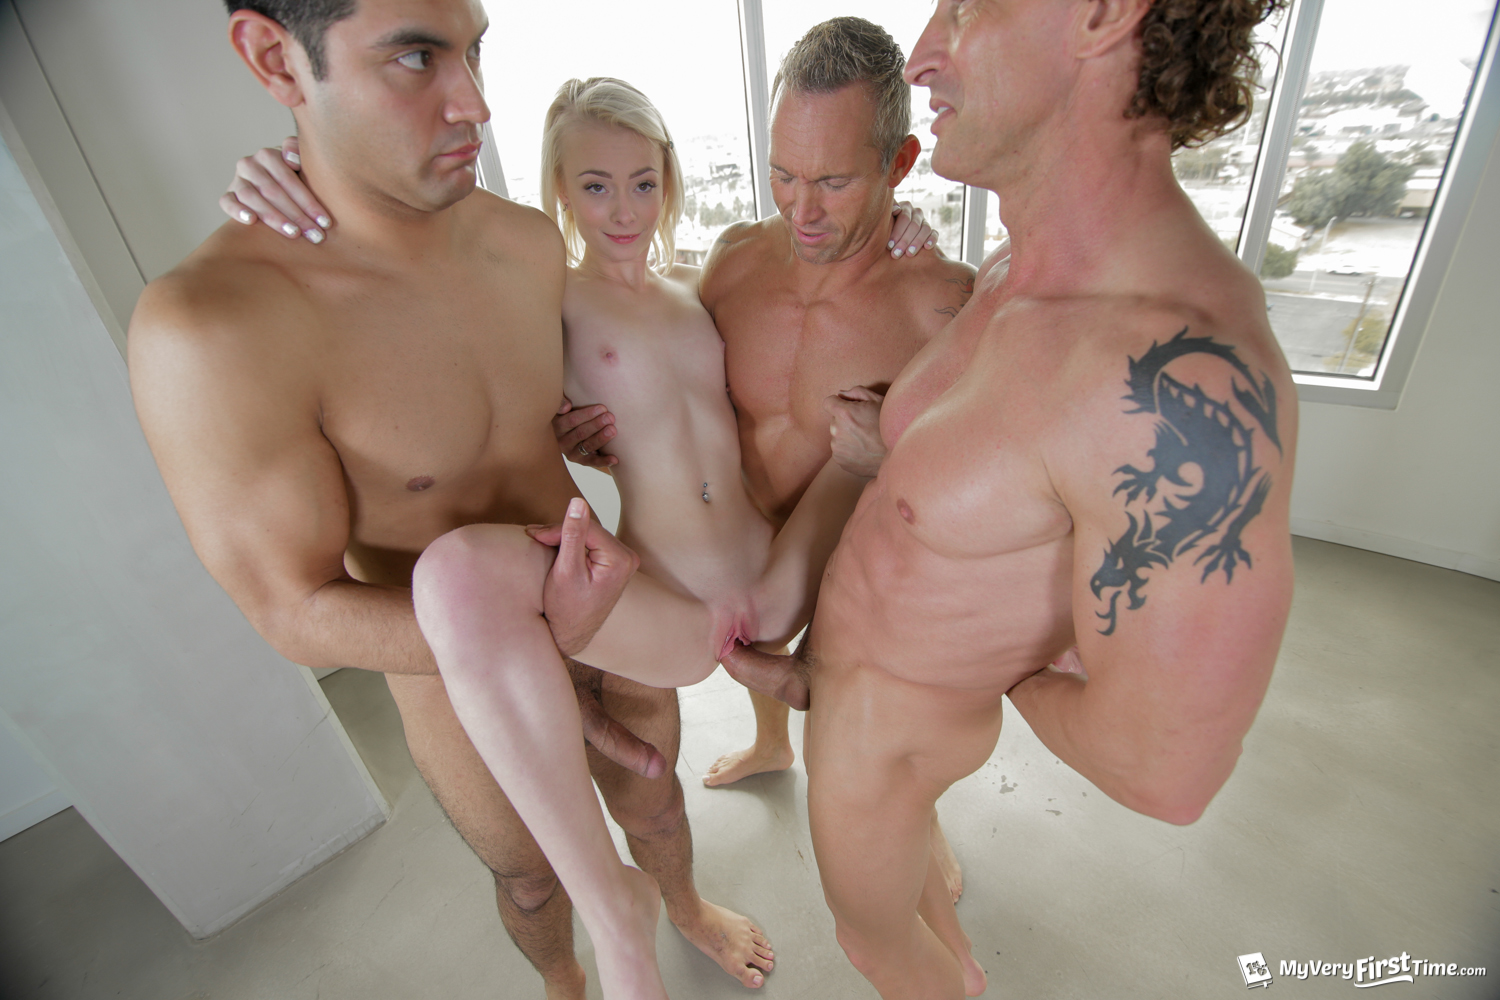 Brutal vaginal fisting gang bang-8556